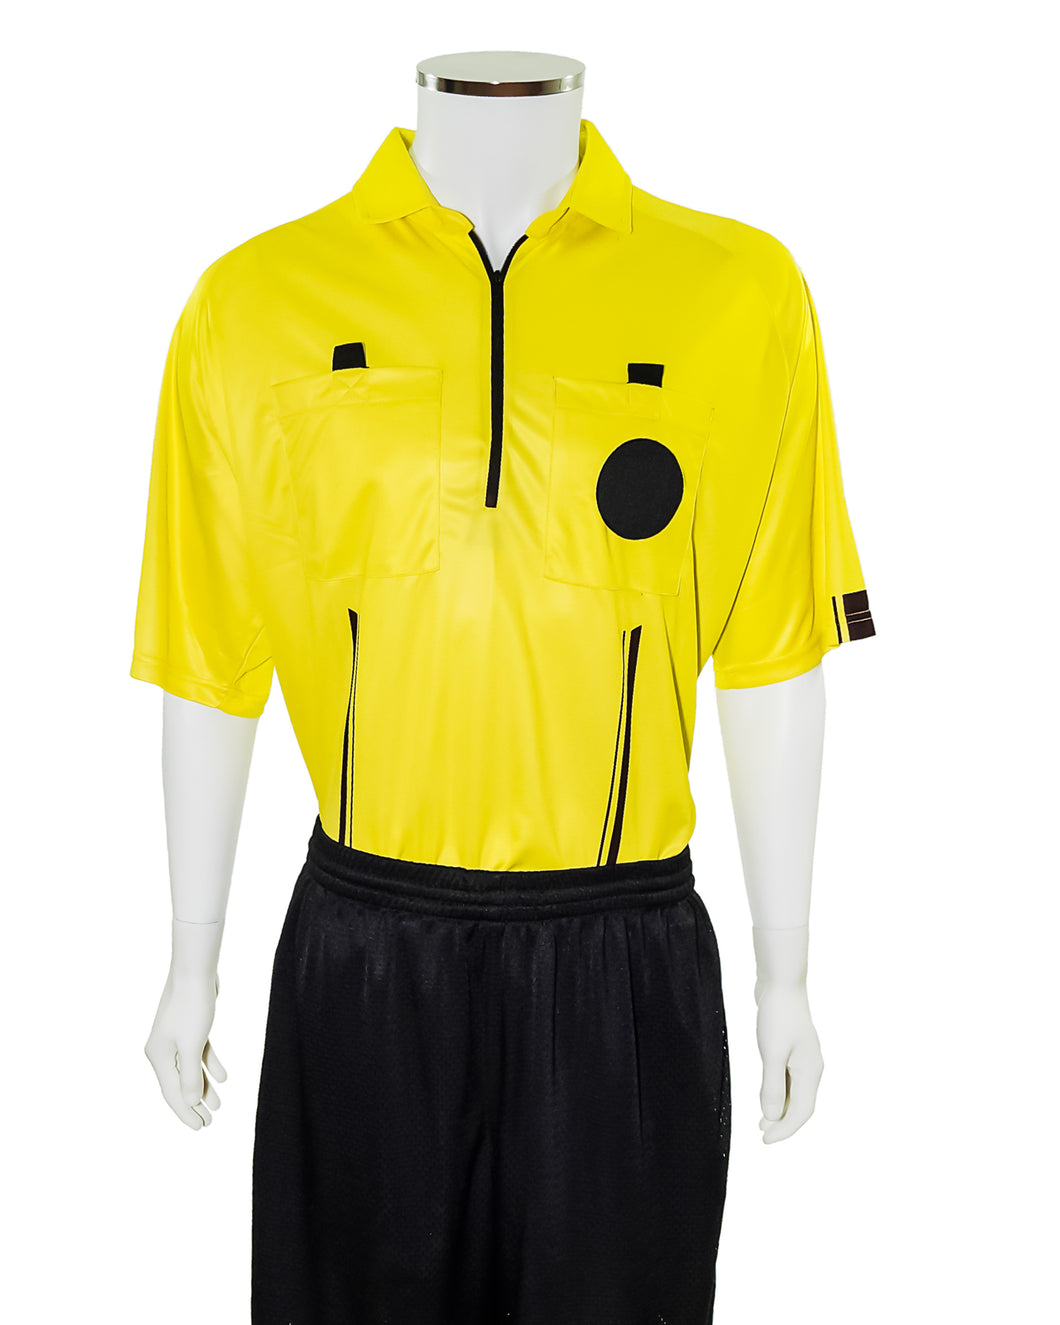 YELLOW New USSF Pro Soccer Referee Jersey - Officials Depot